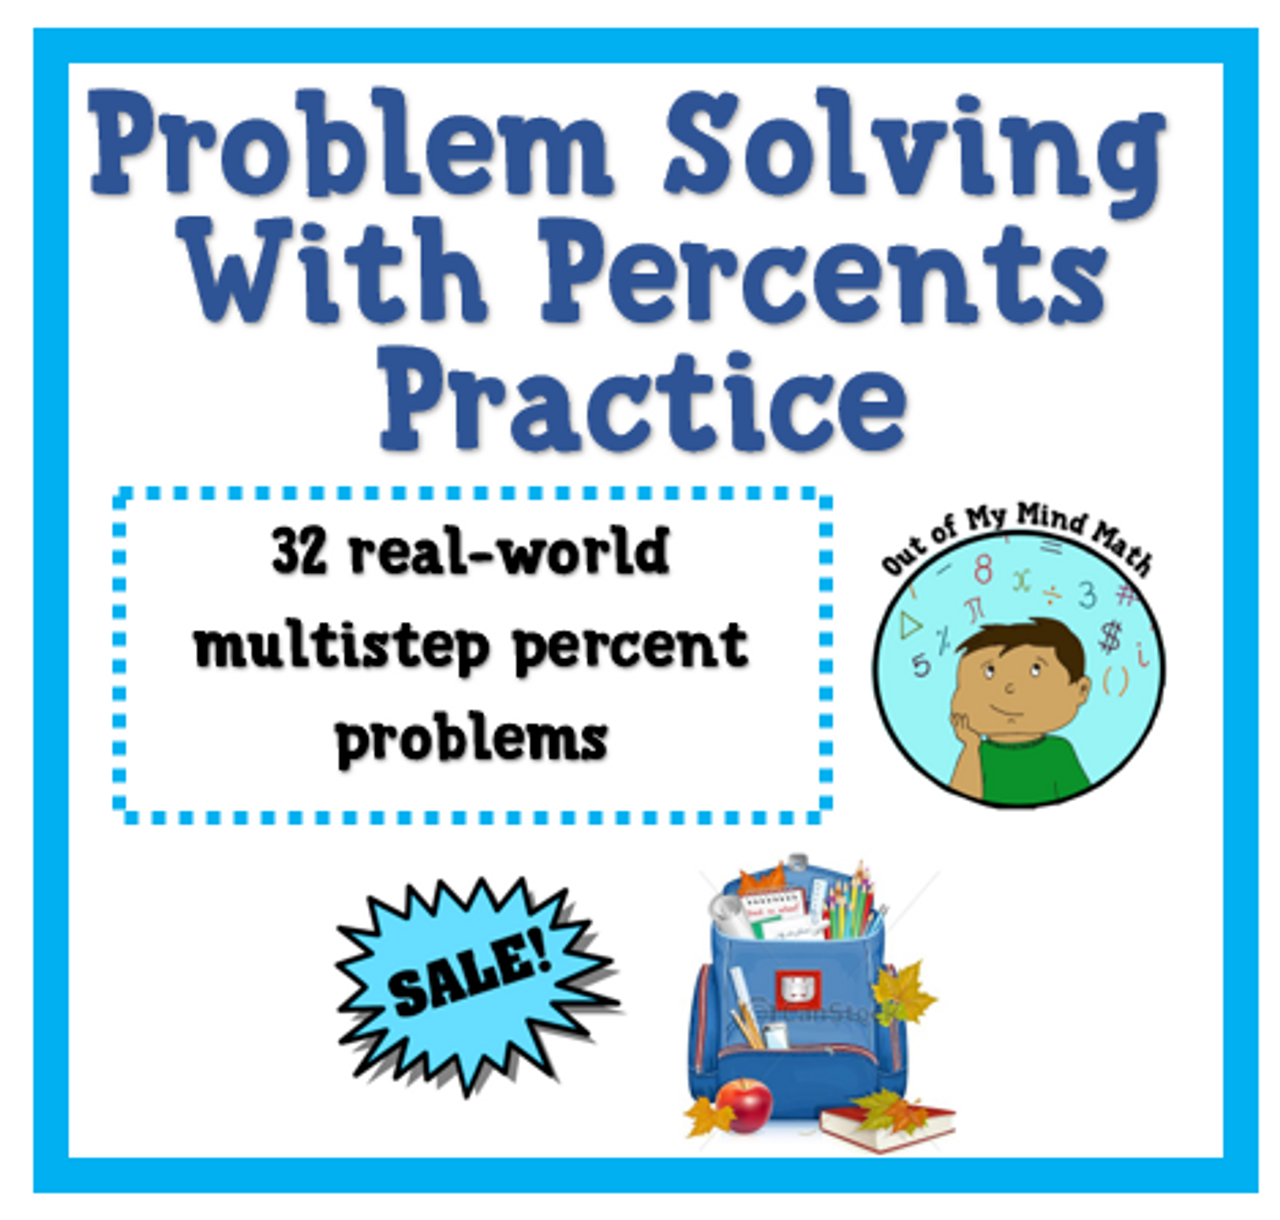 Problem Solving with Percents Practice